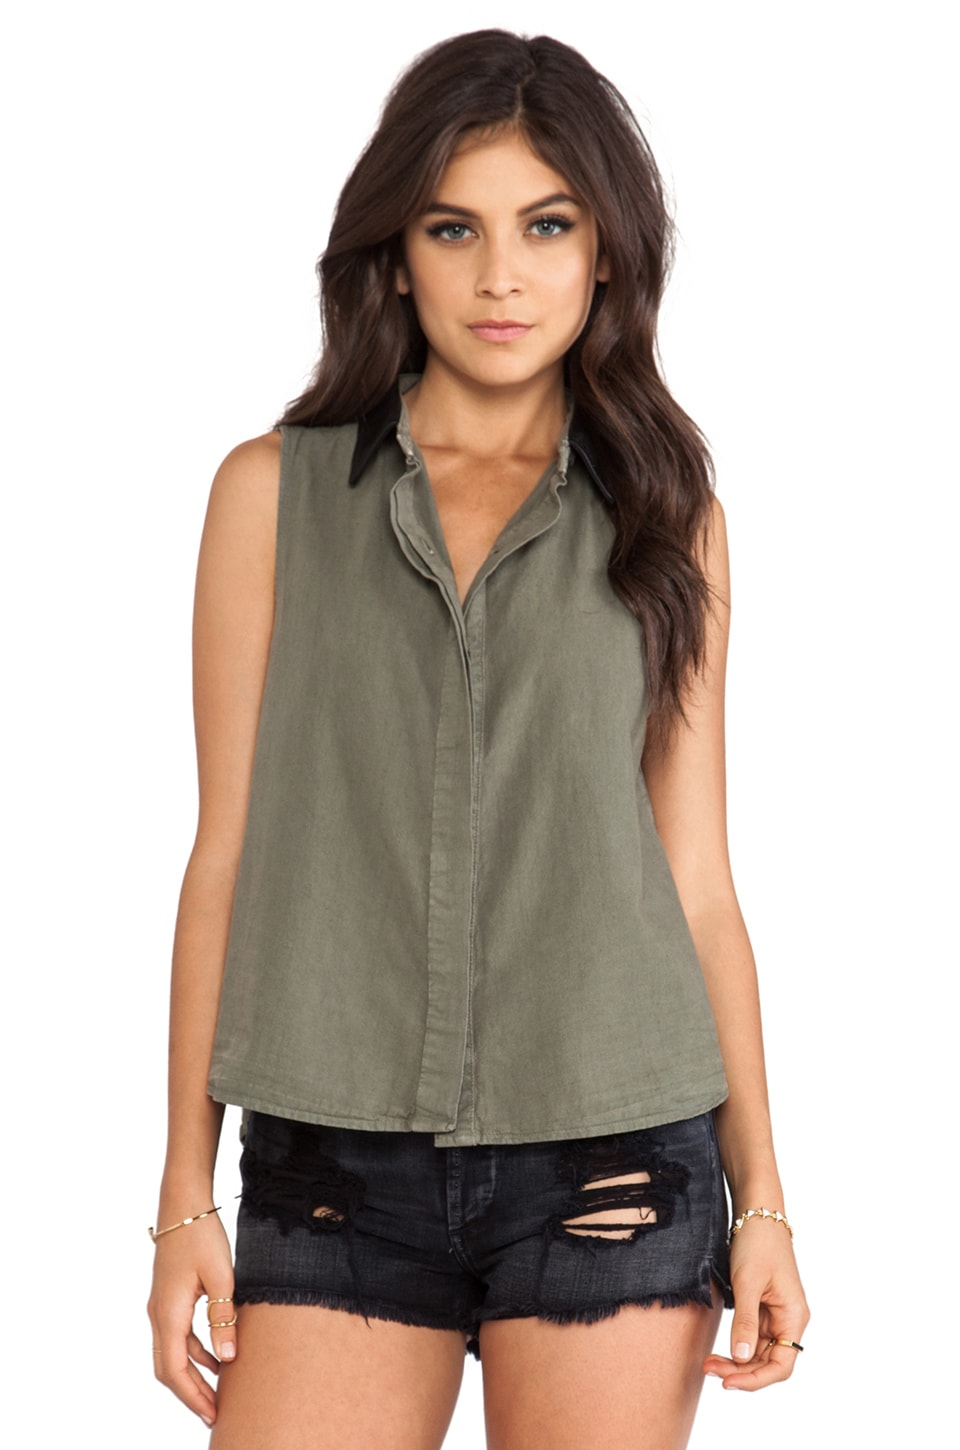 rag & bone/JEAN Tent Tank in Army w/ Leather